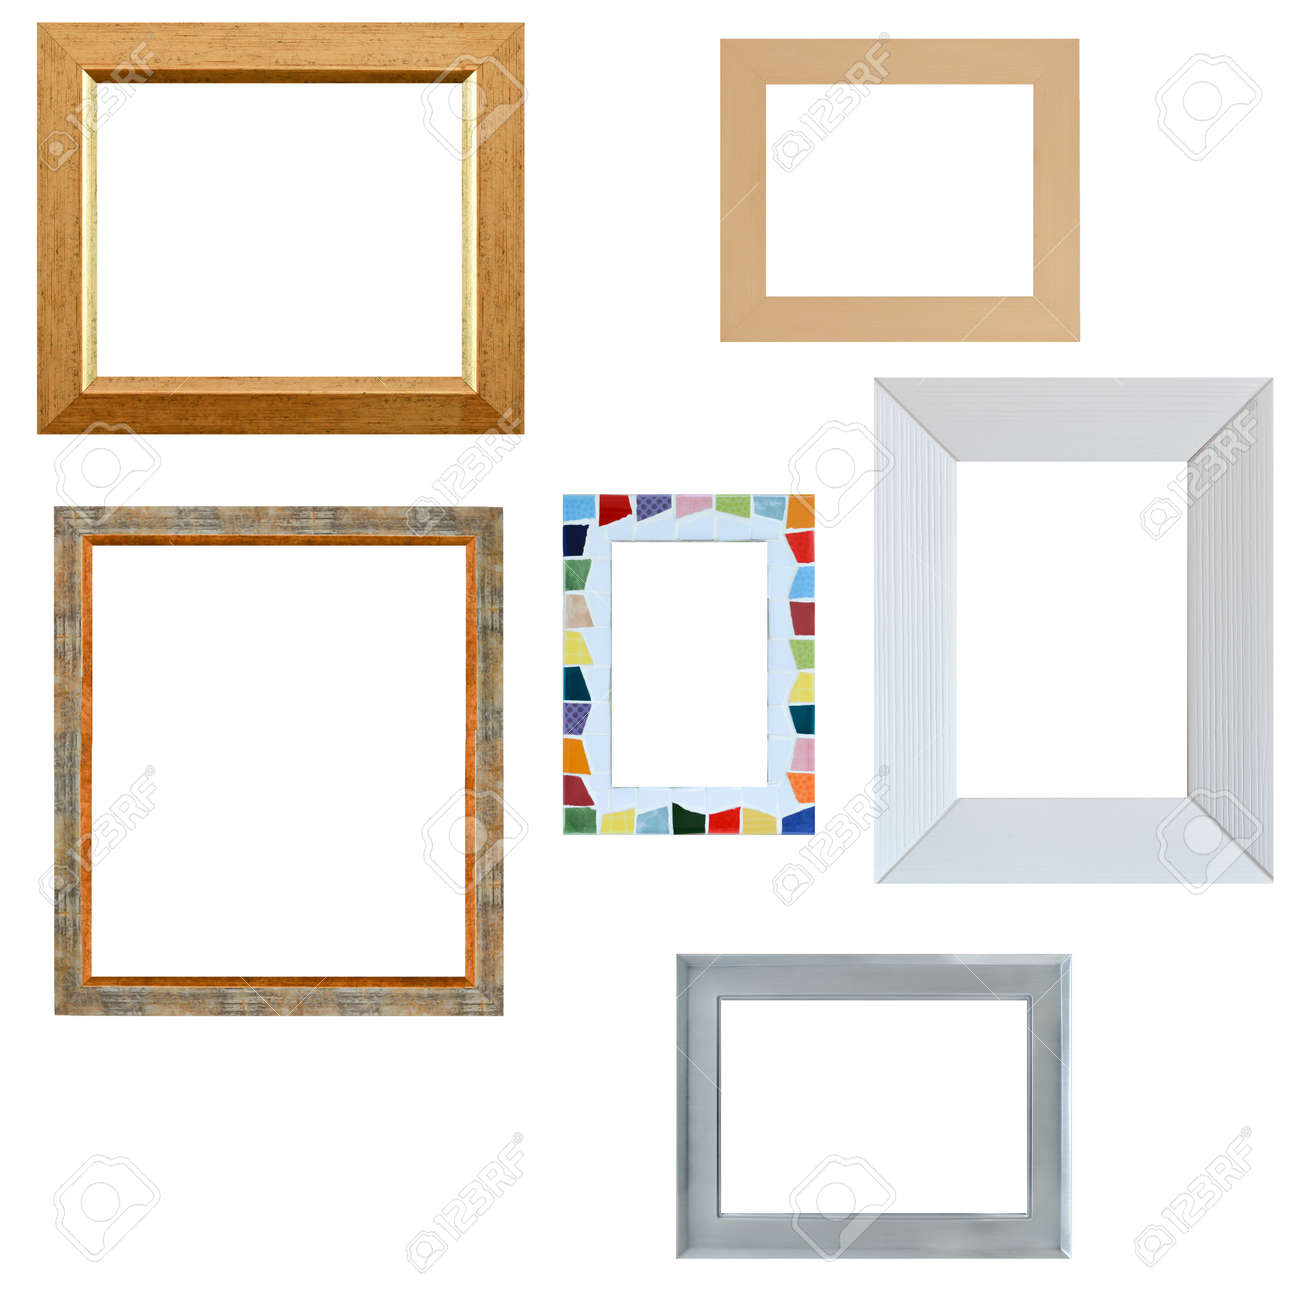 af477f8b645 Multiple empty frames isolated on white background Stock Photo - 70201248